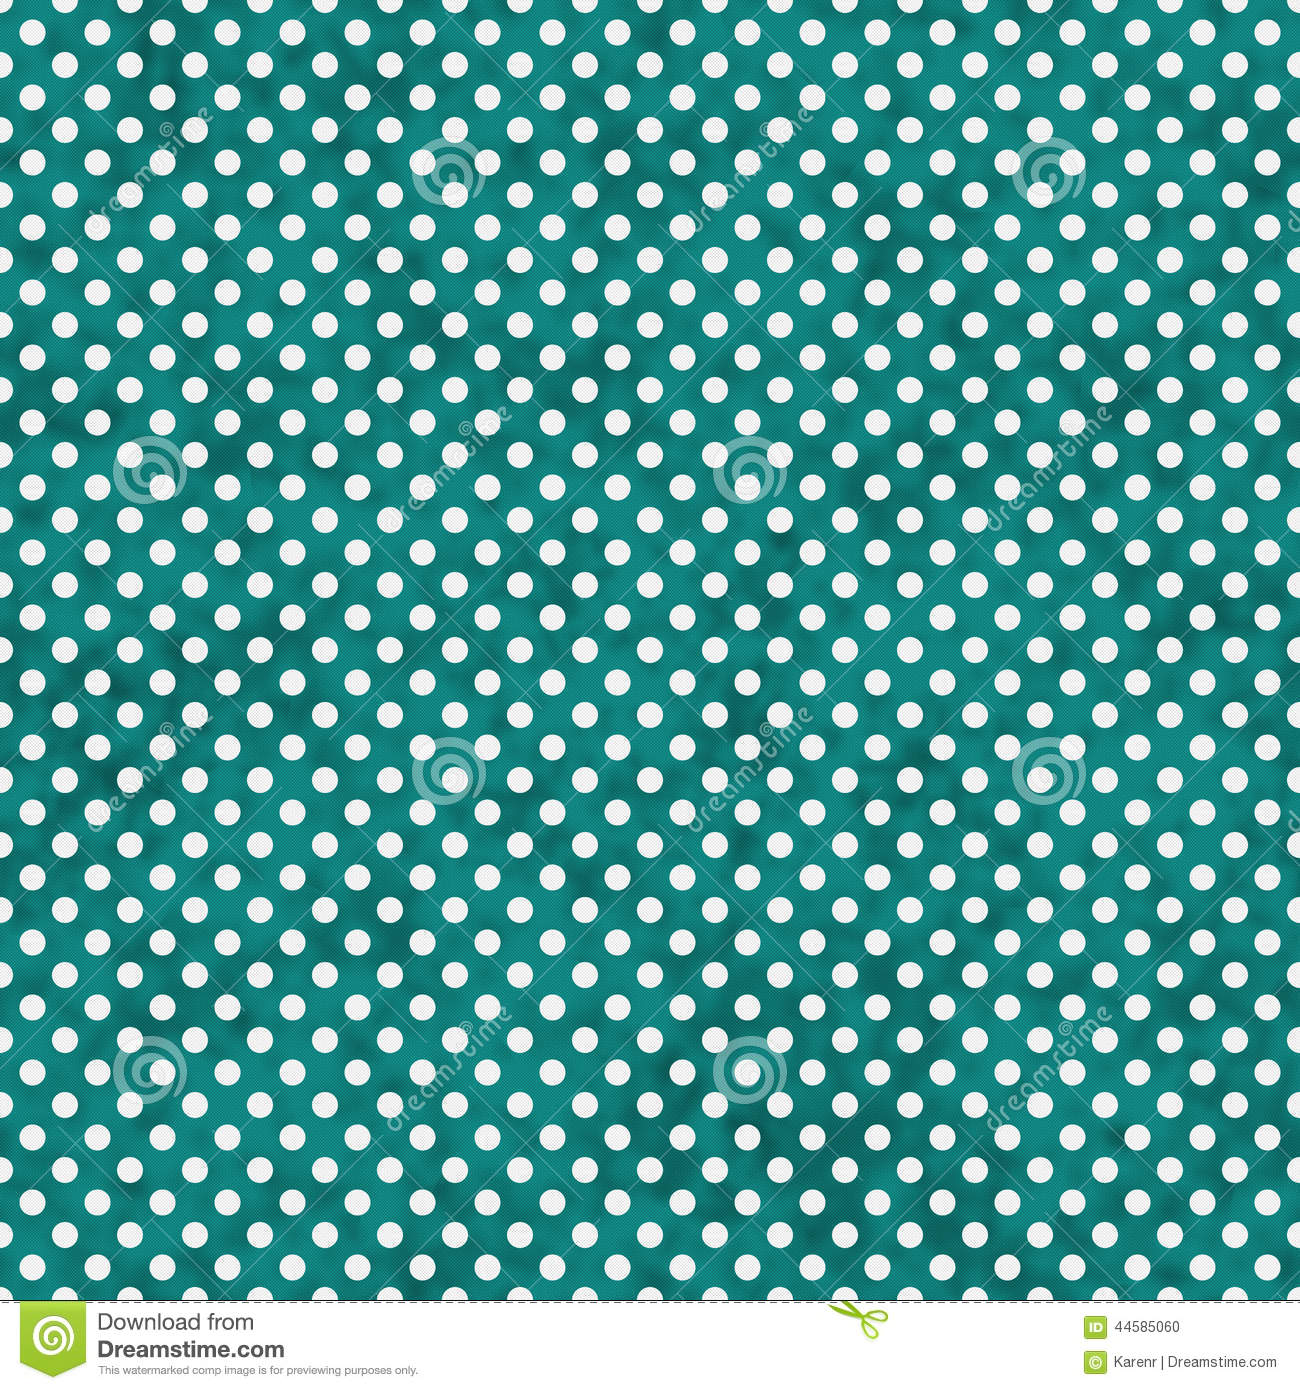 Bright Teal And White Small Polka Dots Pattern Repeat ...